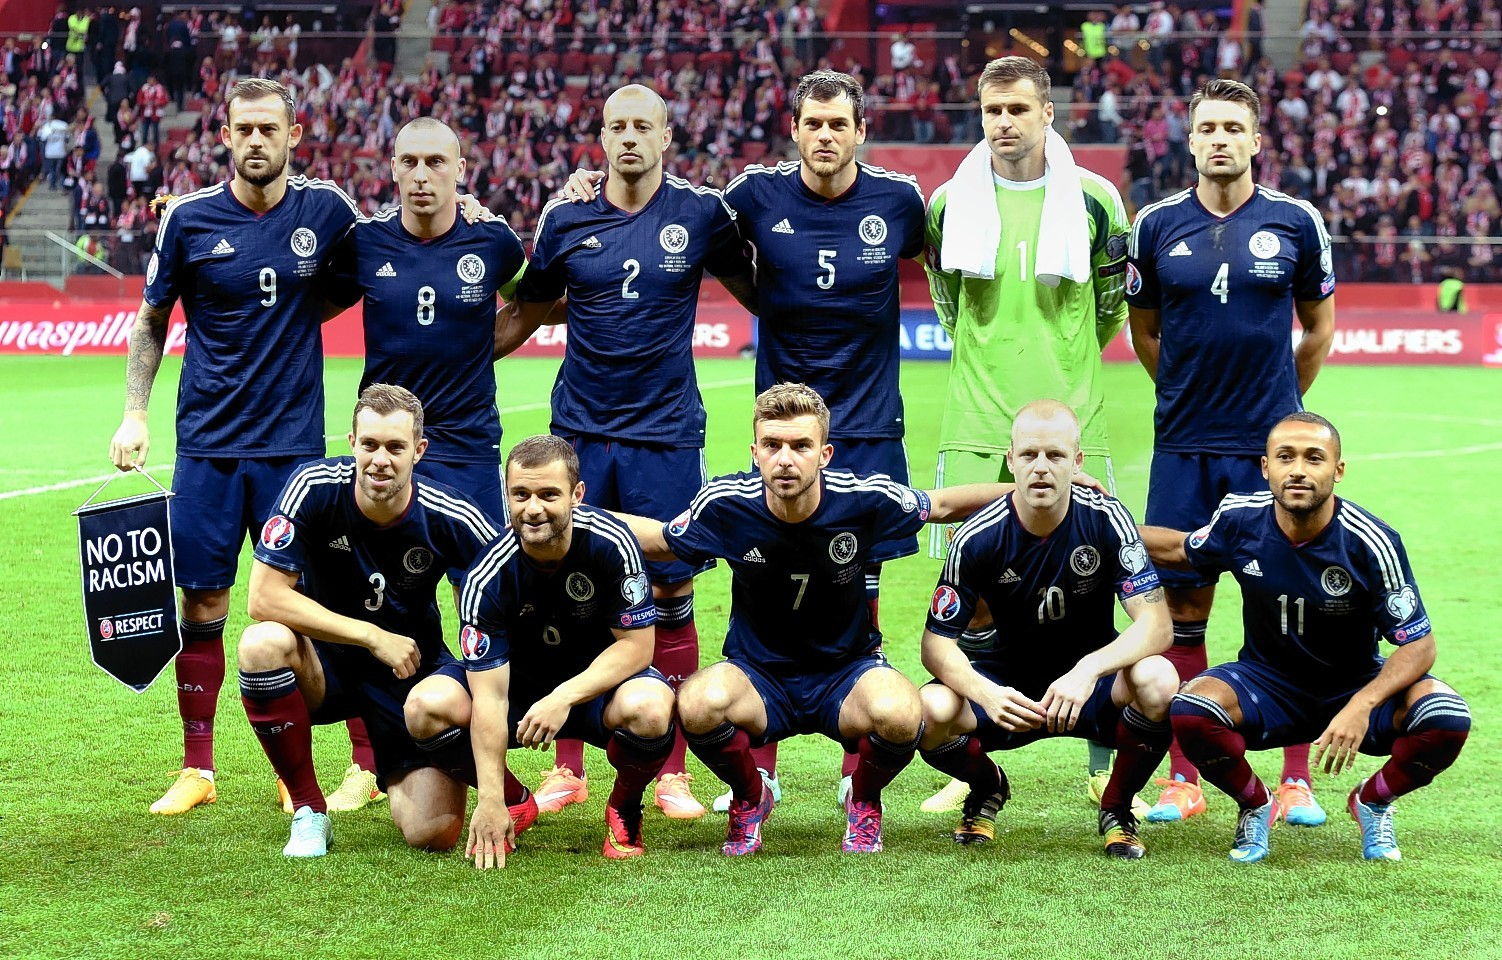 The Scotland team line up ahead of the match